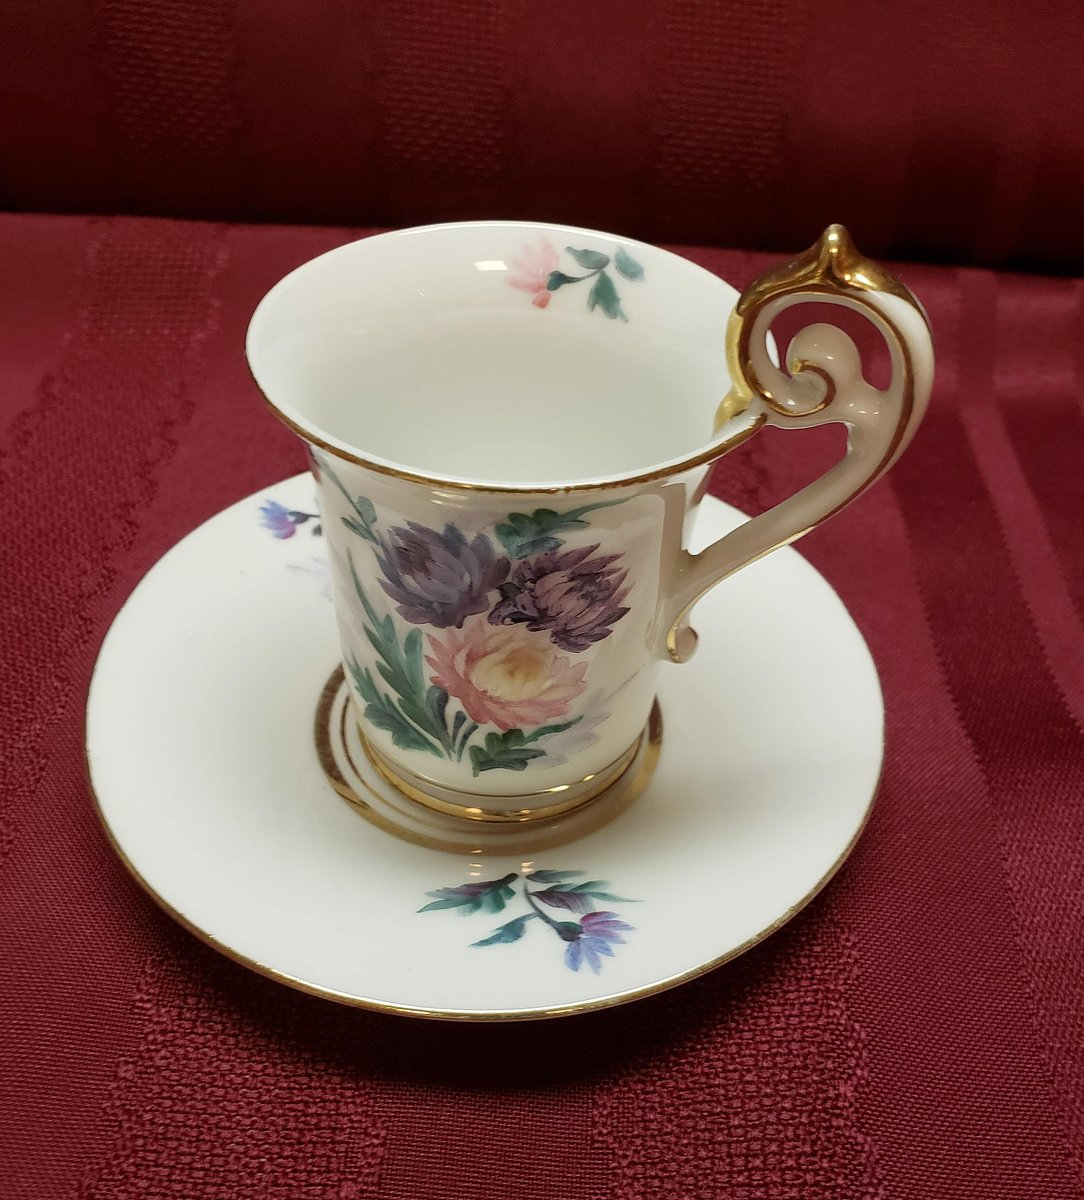 Heavy Gold Trim 1945-1952 Bone China OCCUPIED JAPAN Demitasse Cup /& Saucer Pink Purple Blue Floral Collectible MCM Decor Dining Bridal